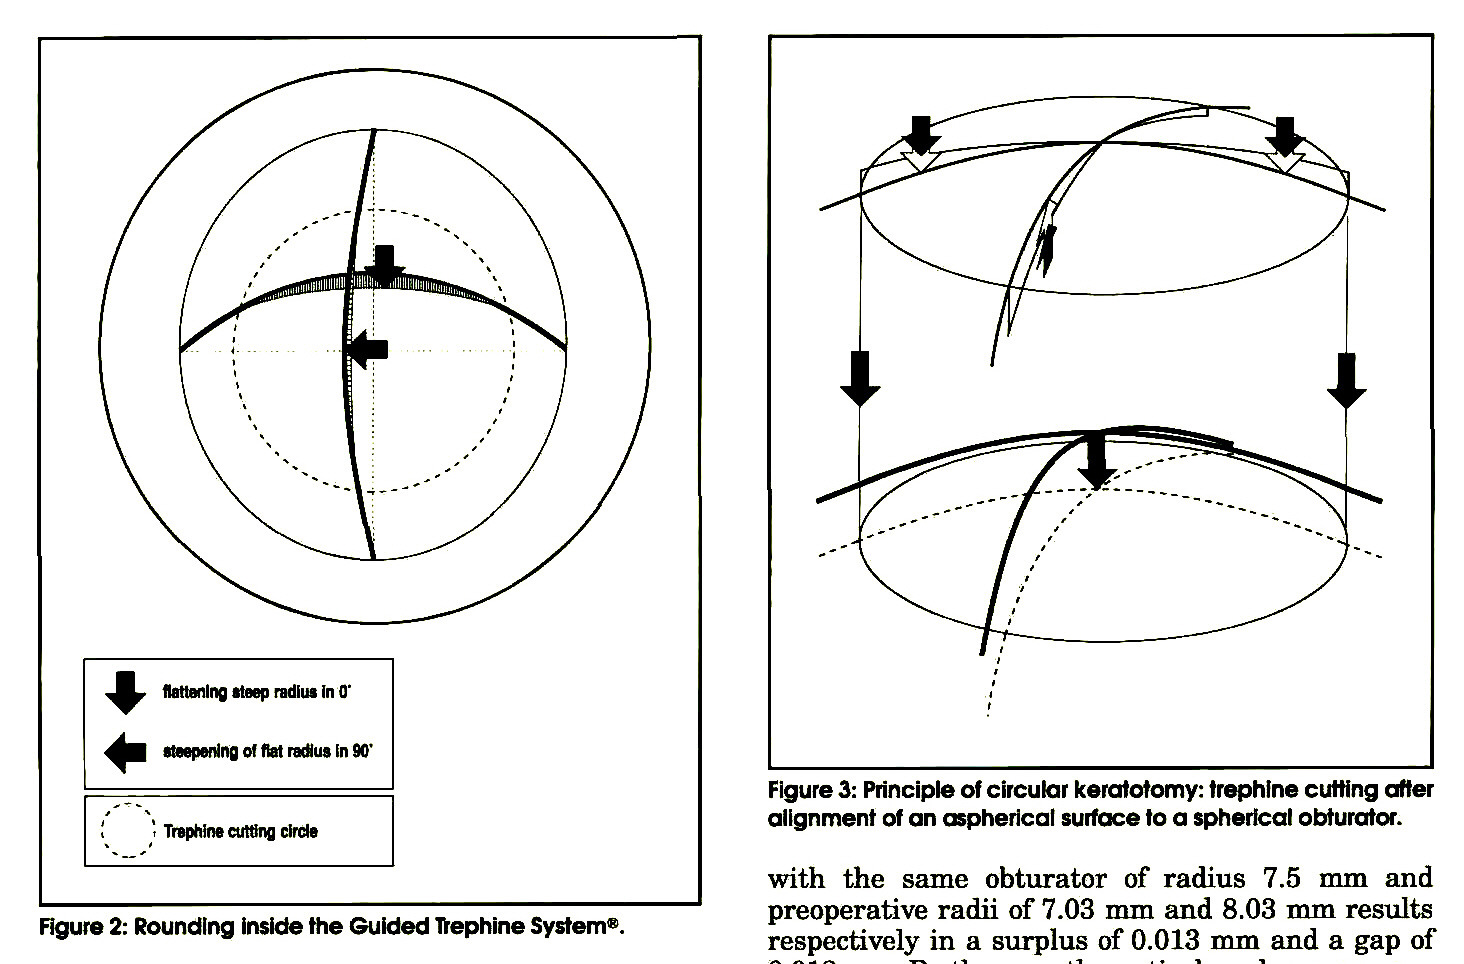 Figure 2: Rounding inside the Guided Trephine System®.Figure 3: Principle of circular keratotomy: trephine cutting after alignment of an aspherical surface to a spherical obturator.